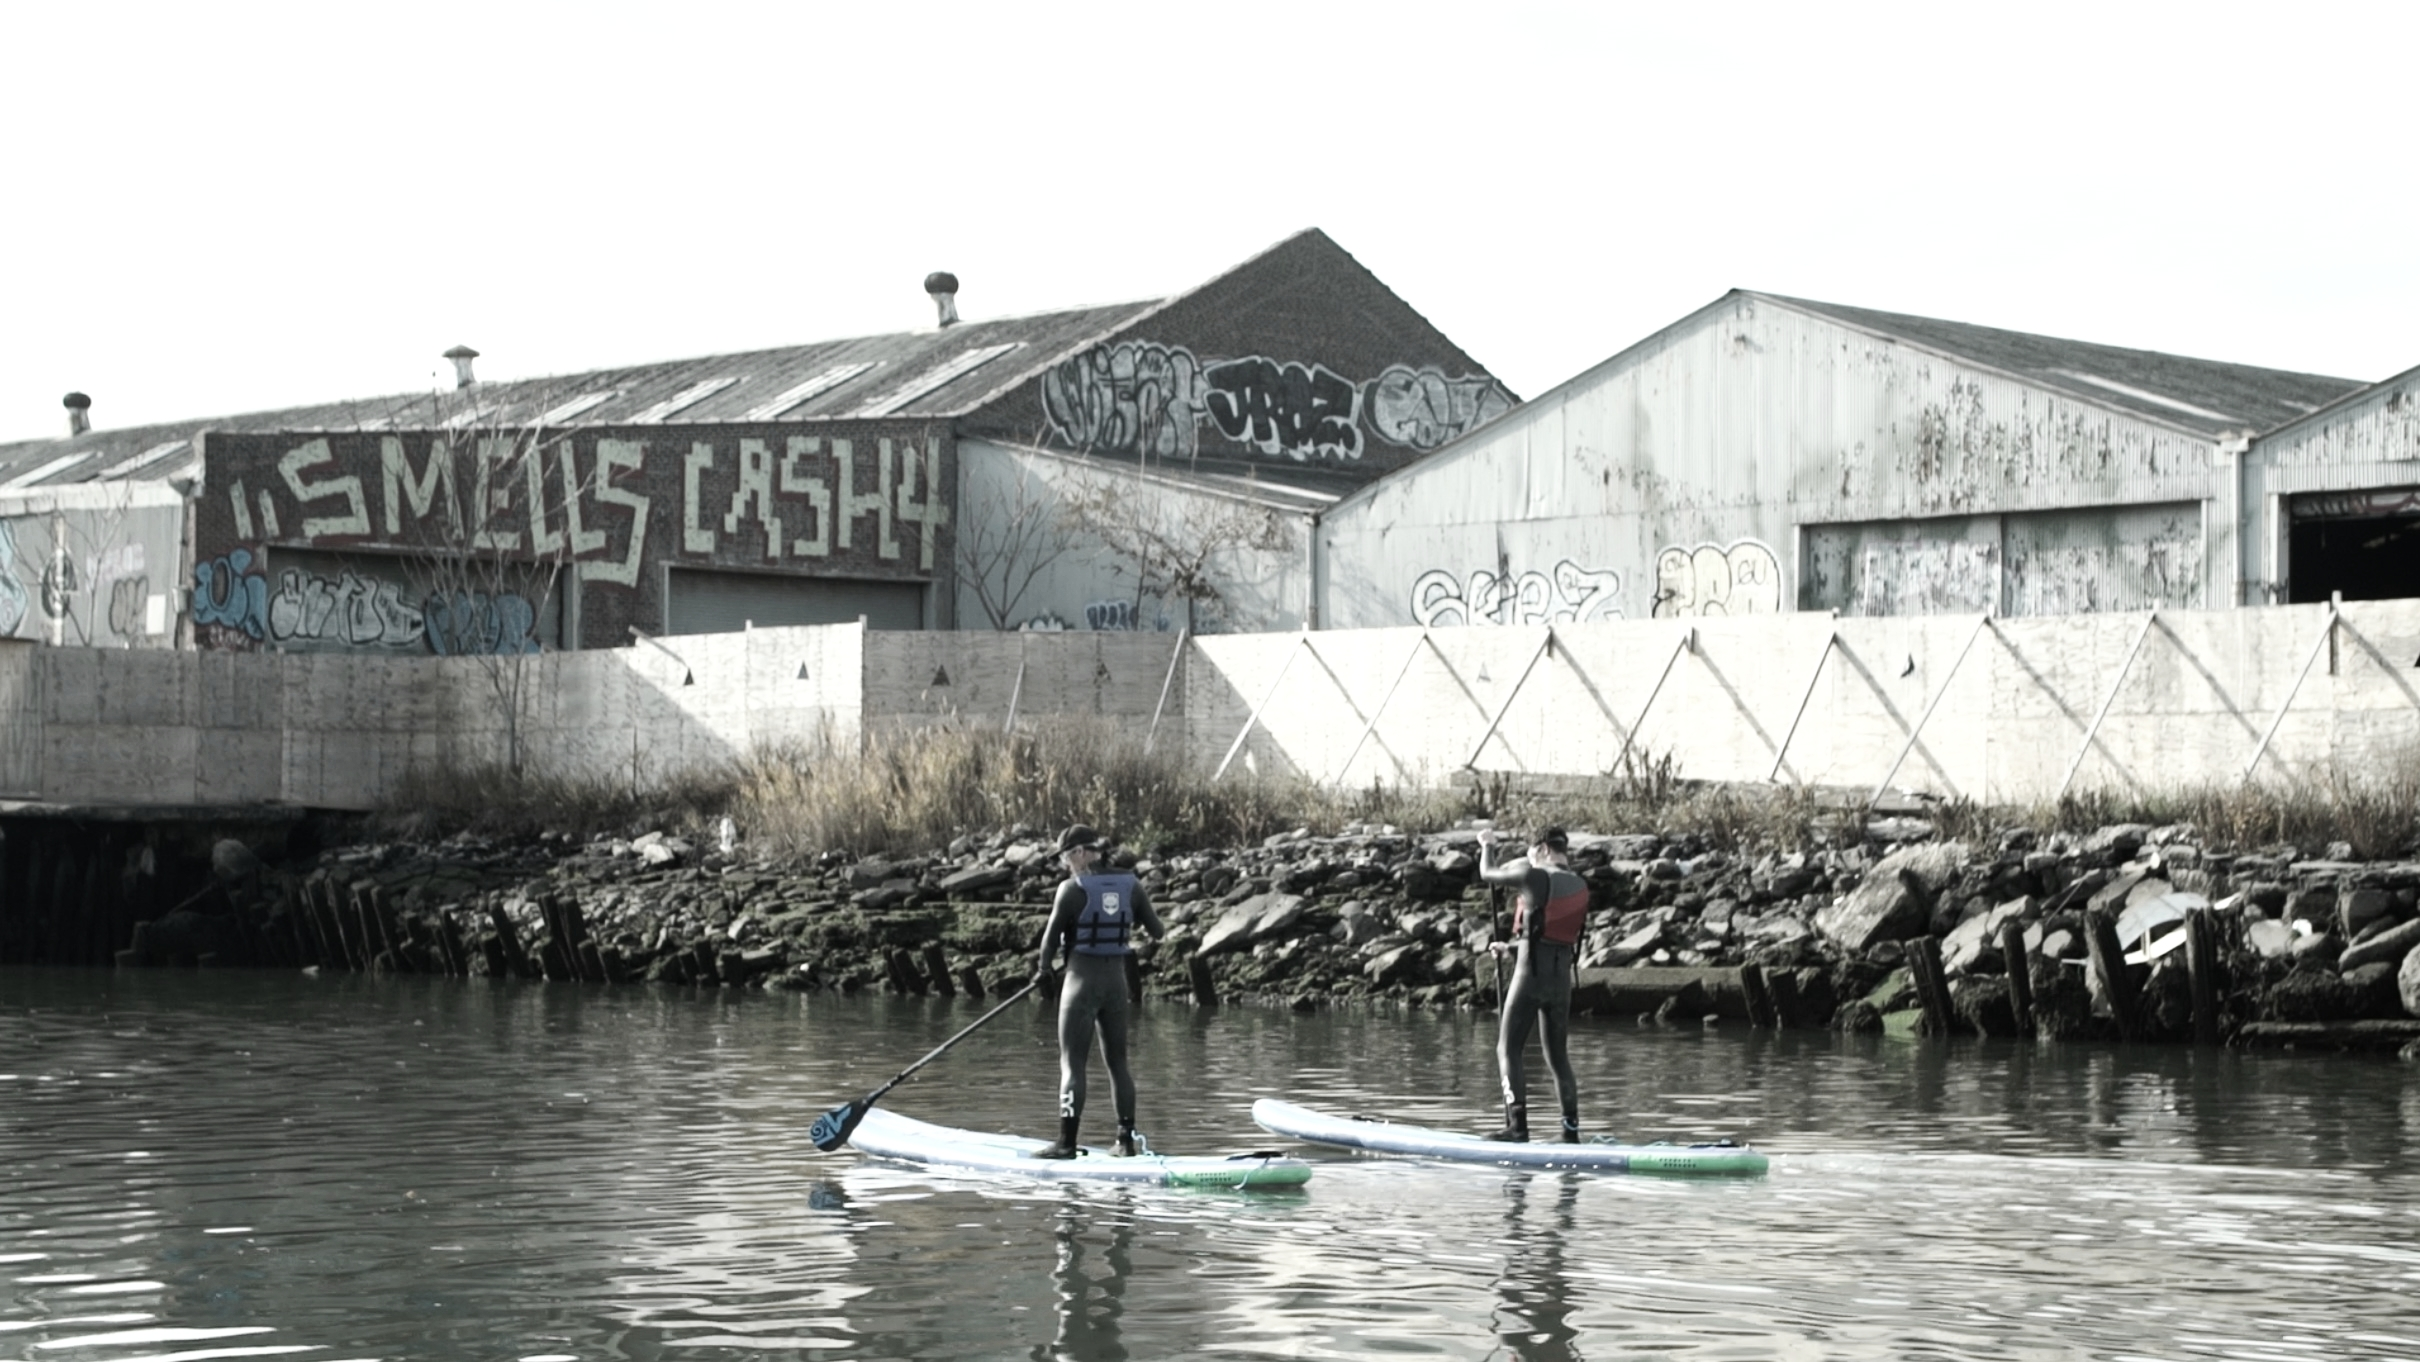 Sam-and-Gary-Bencheghib-in-Gowanus-Bay_12-02-17_Photo-by-Marco-Vitale.jpg